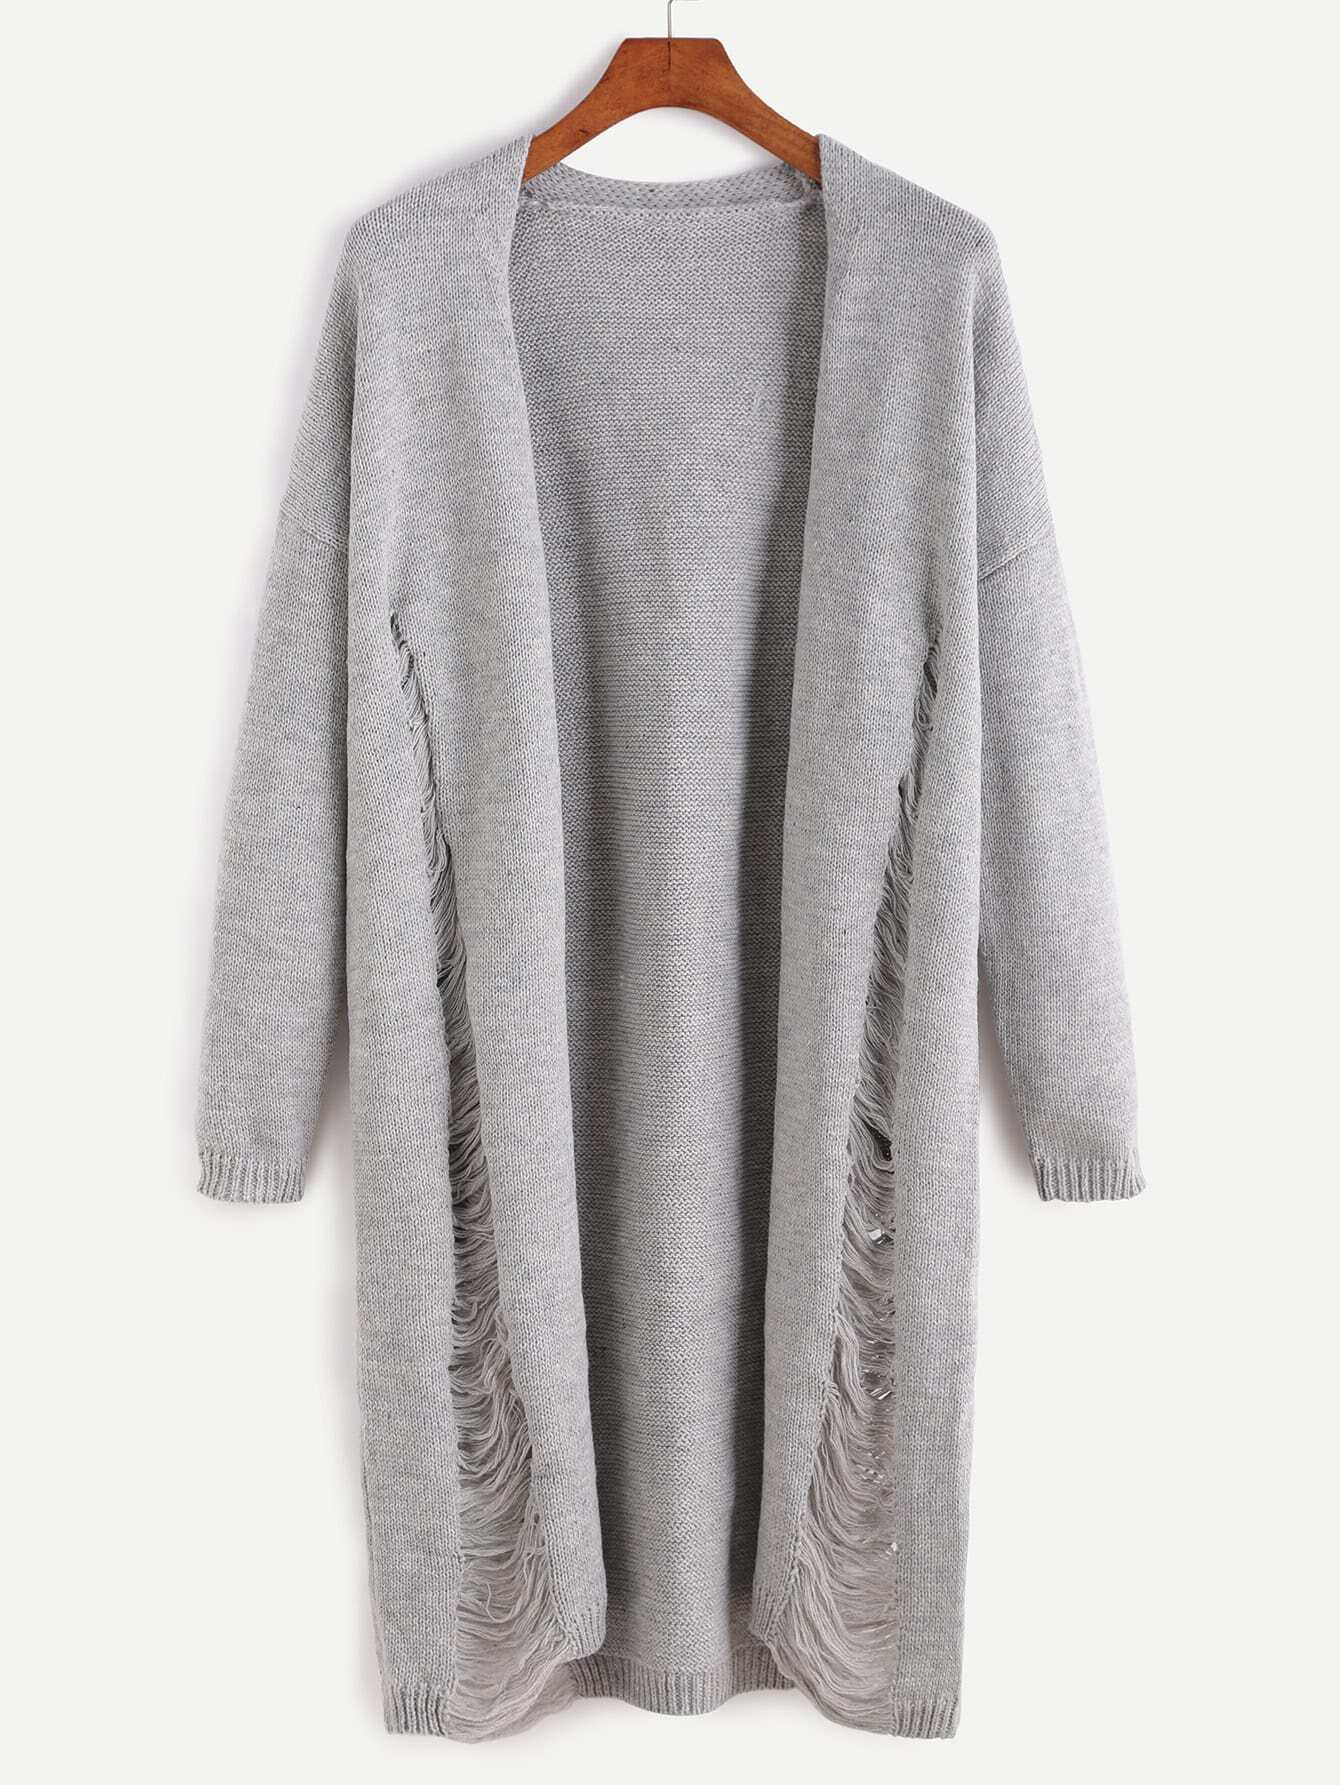 Grey Drop Shoulder Open Front Ripped Back Sweater Coat sweater160810705